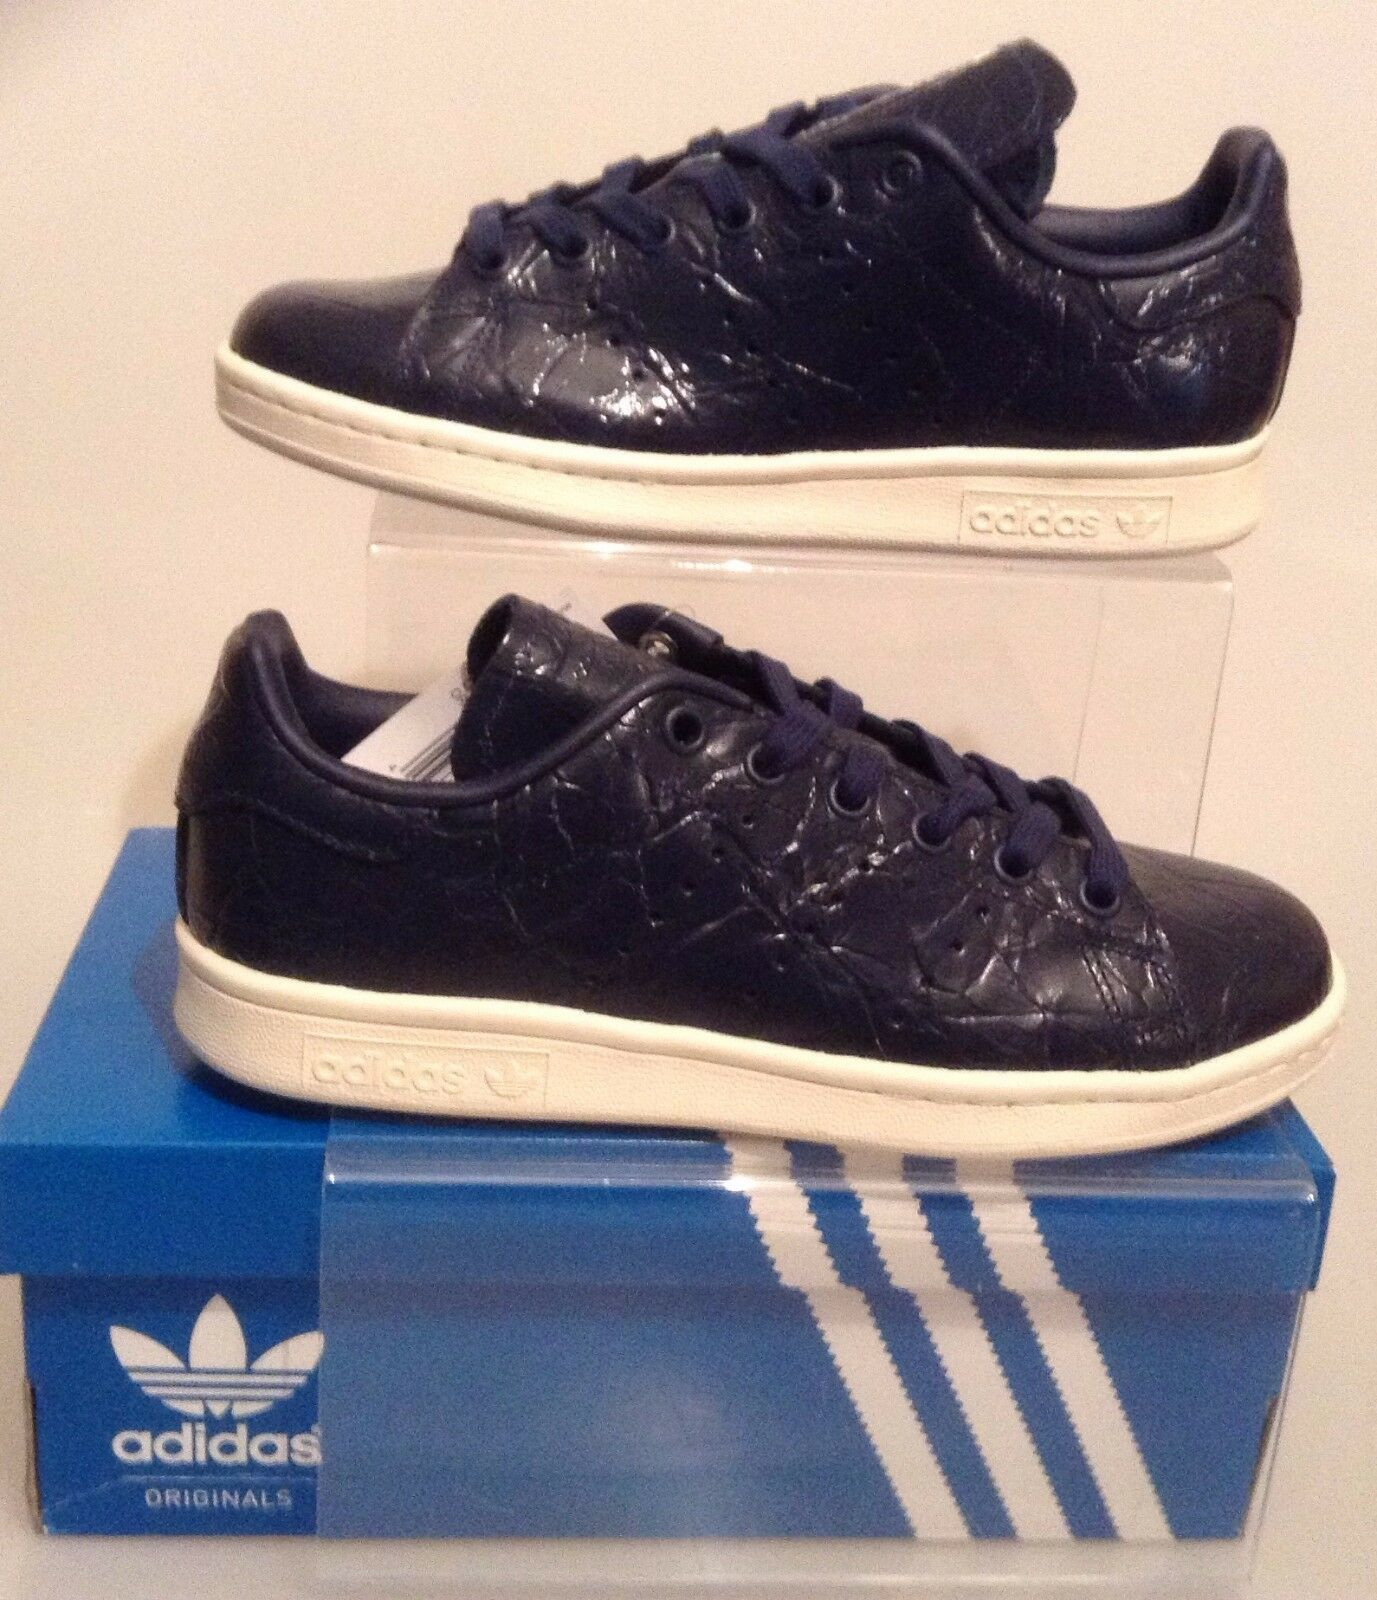 AUTHENTIC ADIDAS STAN SMITH TRAINERS NAVY-WEISS Damenschuhe SIZES UK 4 TO UK 7.5